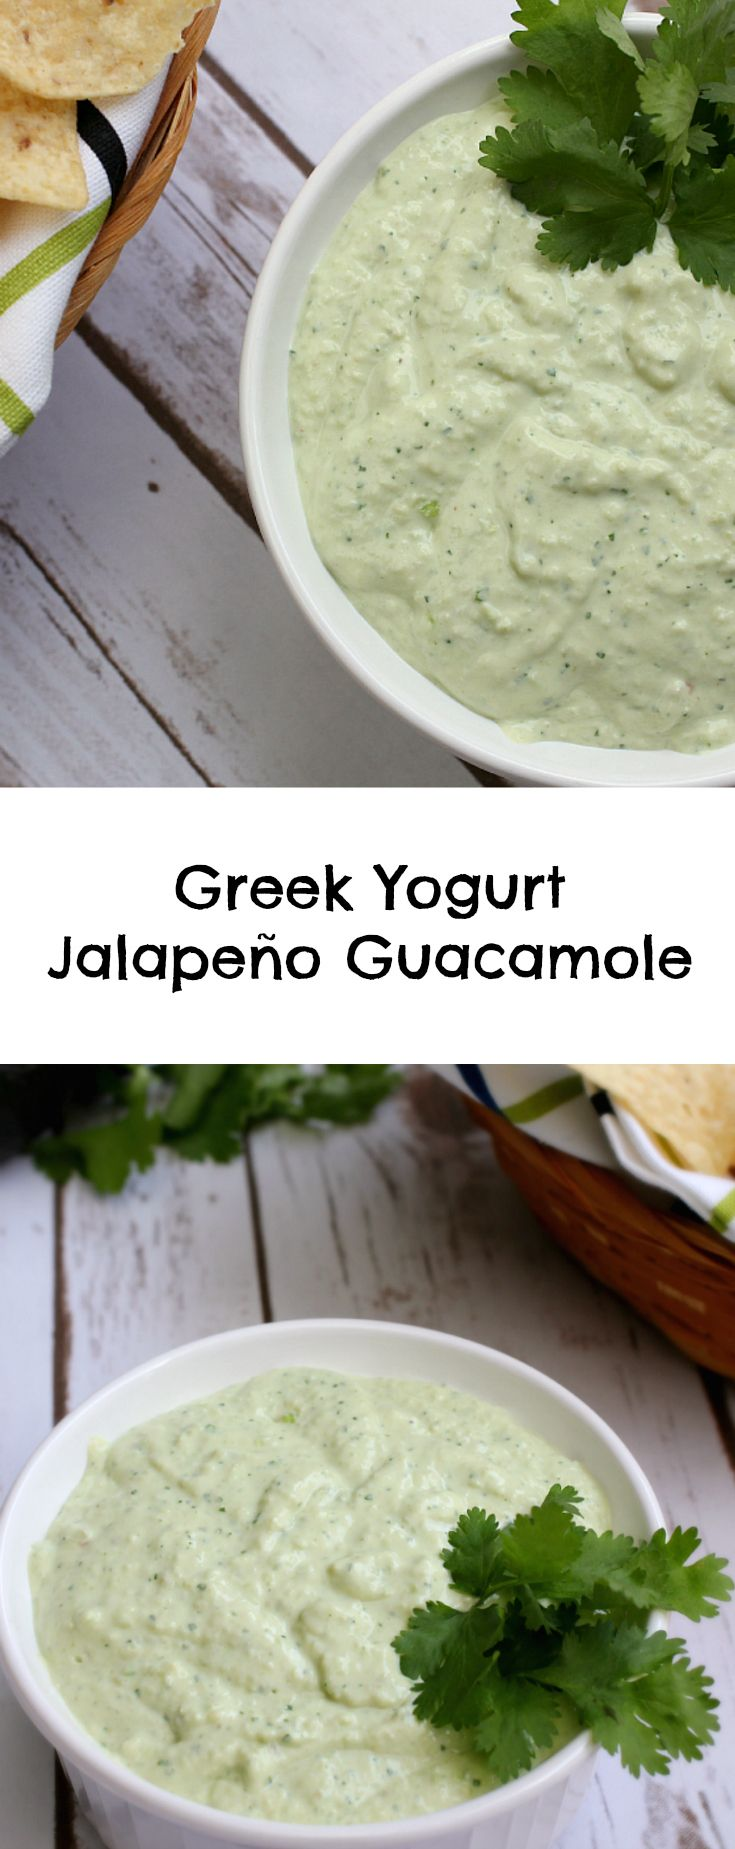 Greek Yogurt Jalapeño Guacamole is the best tasting guacamole recipe that I've had in a long time. The spicy taste is simply amazing.